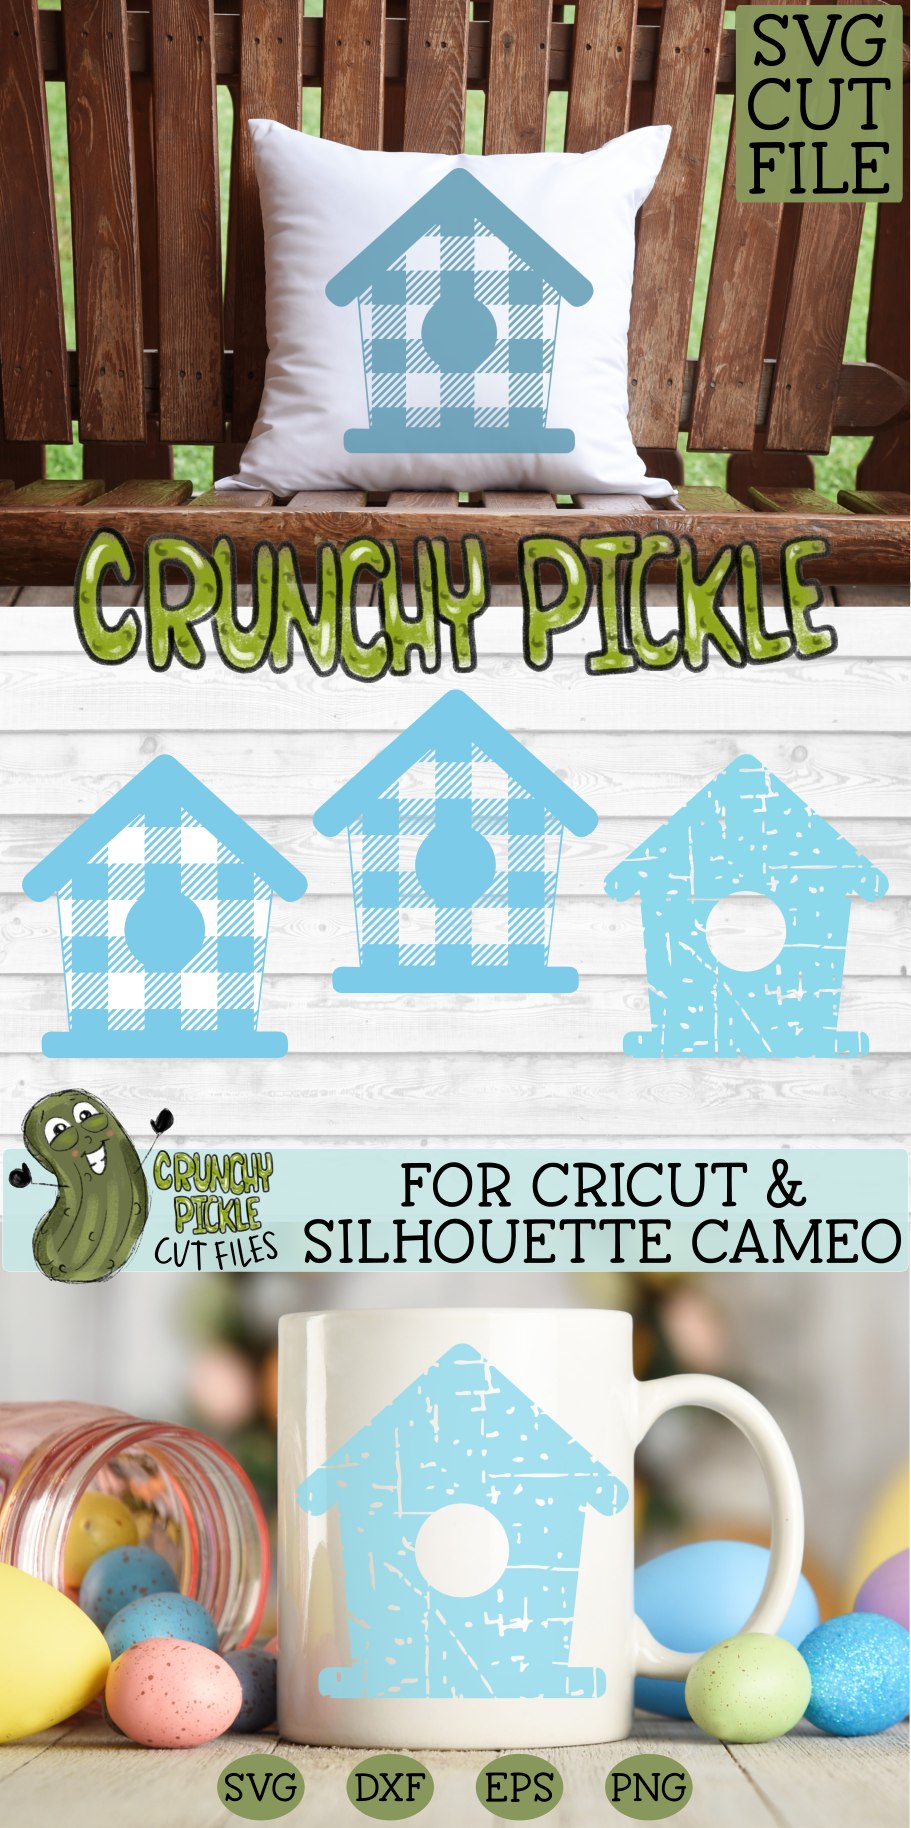 Plaid & Grunge Birdhouse SVG Cut File for Spring or Easter example image 4